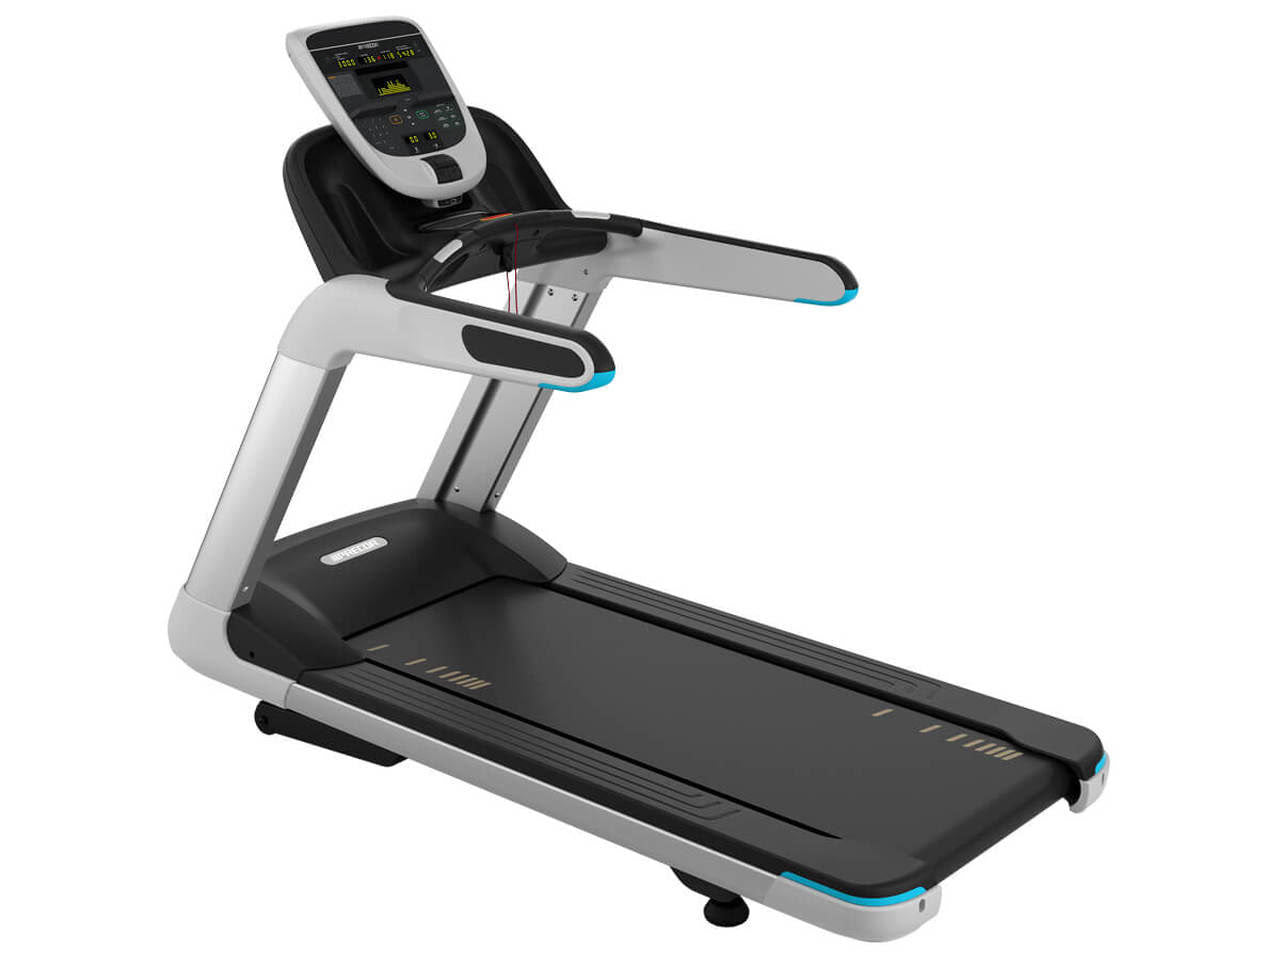 Factory photo of a Refurbished Precor TRM835 Treadmill